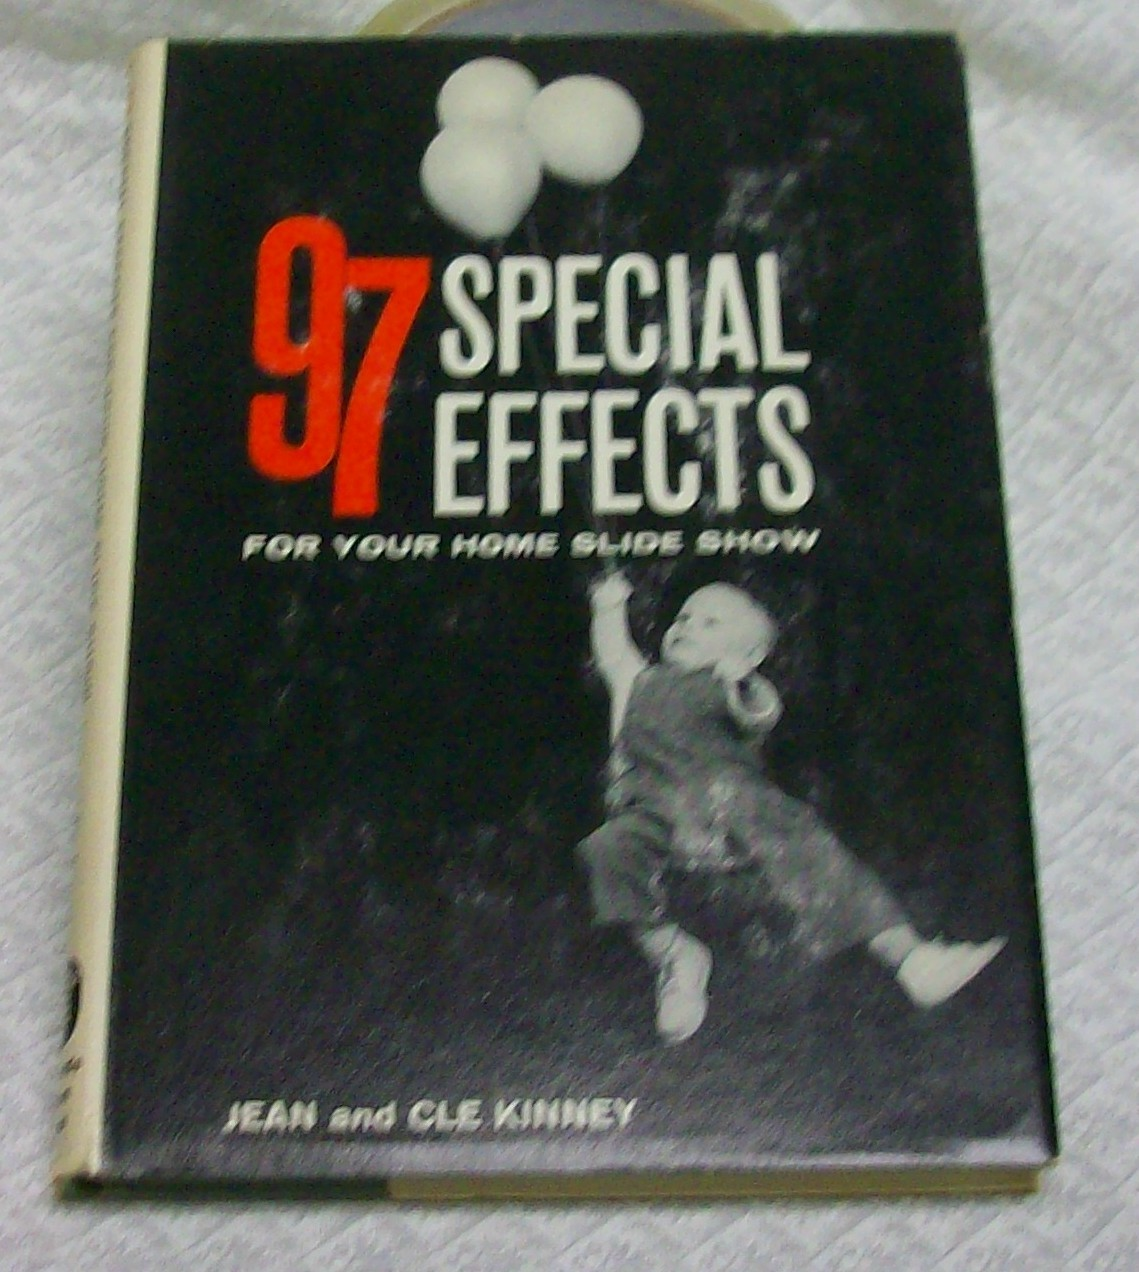 97effects